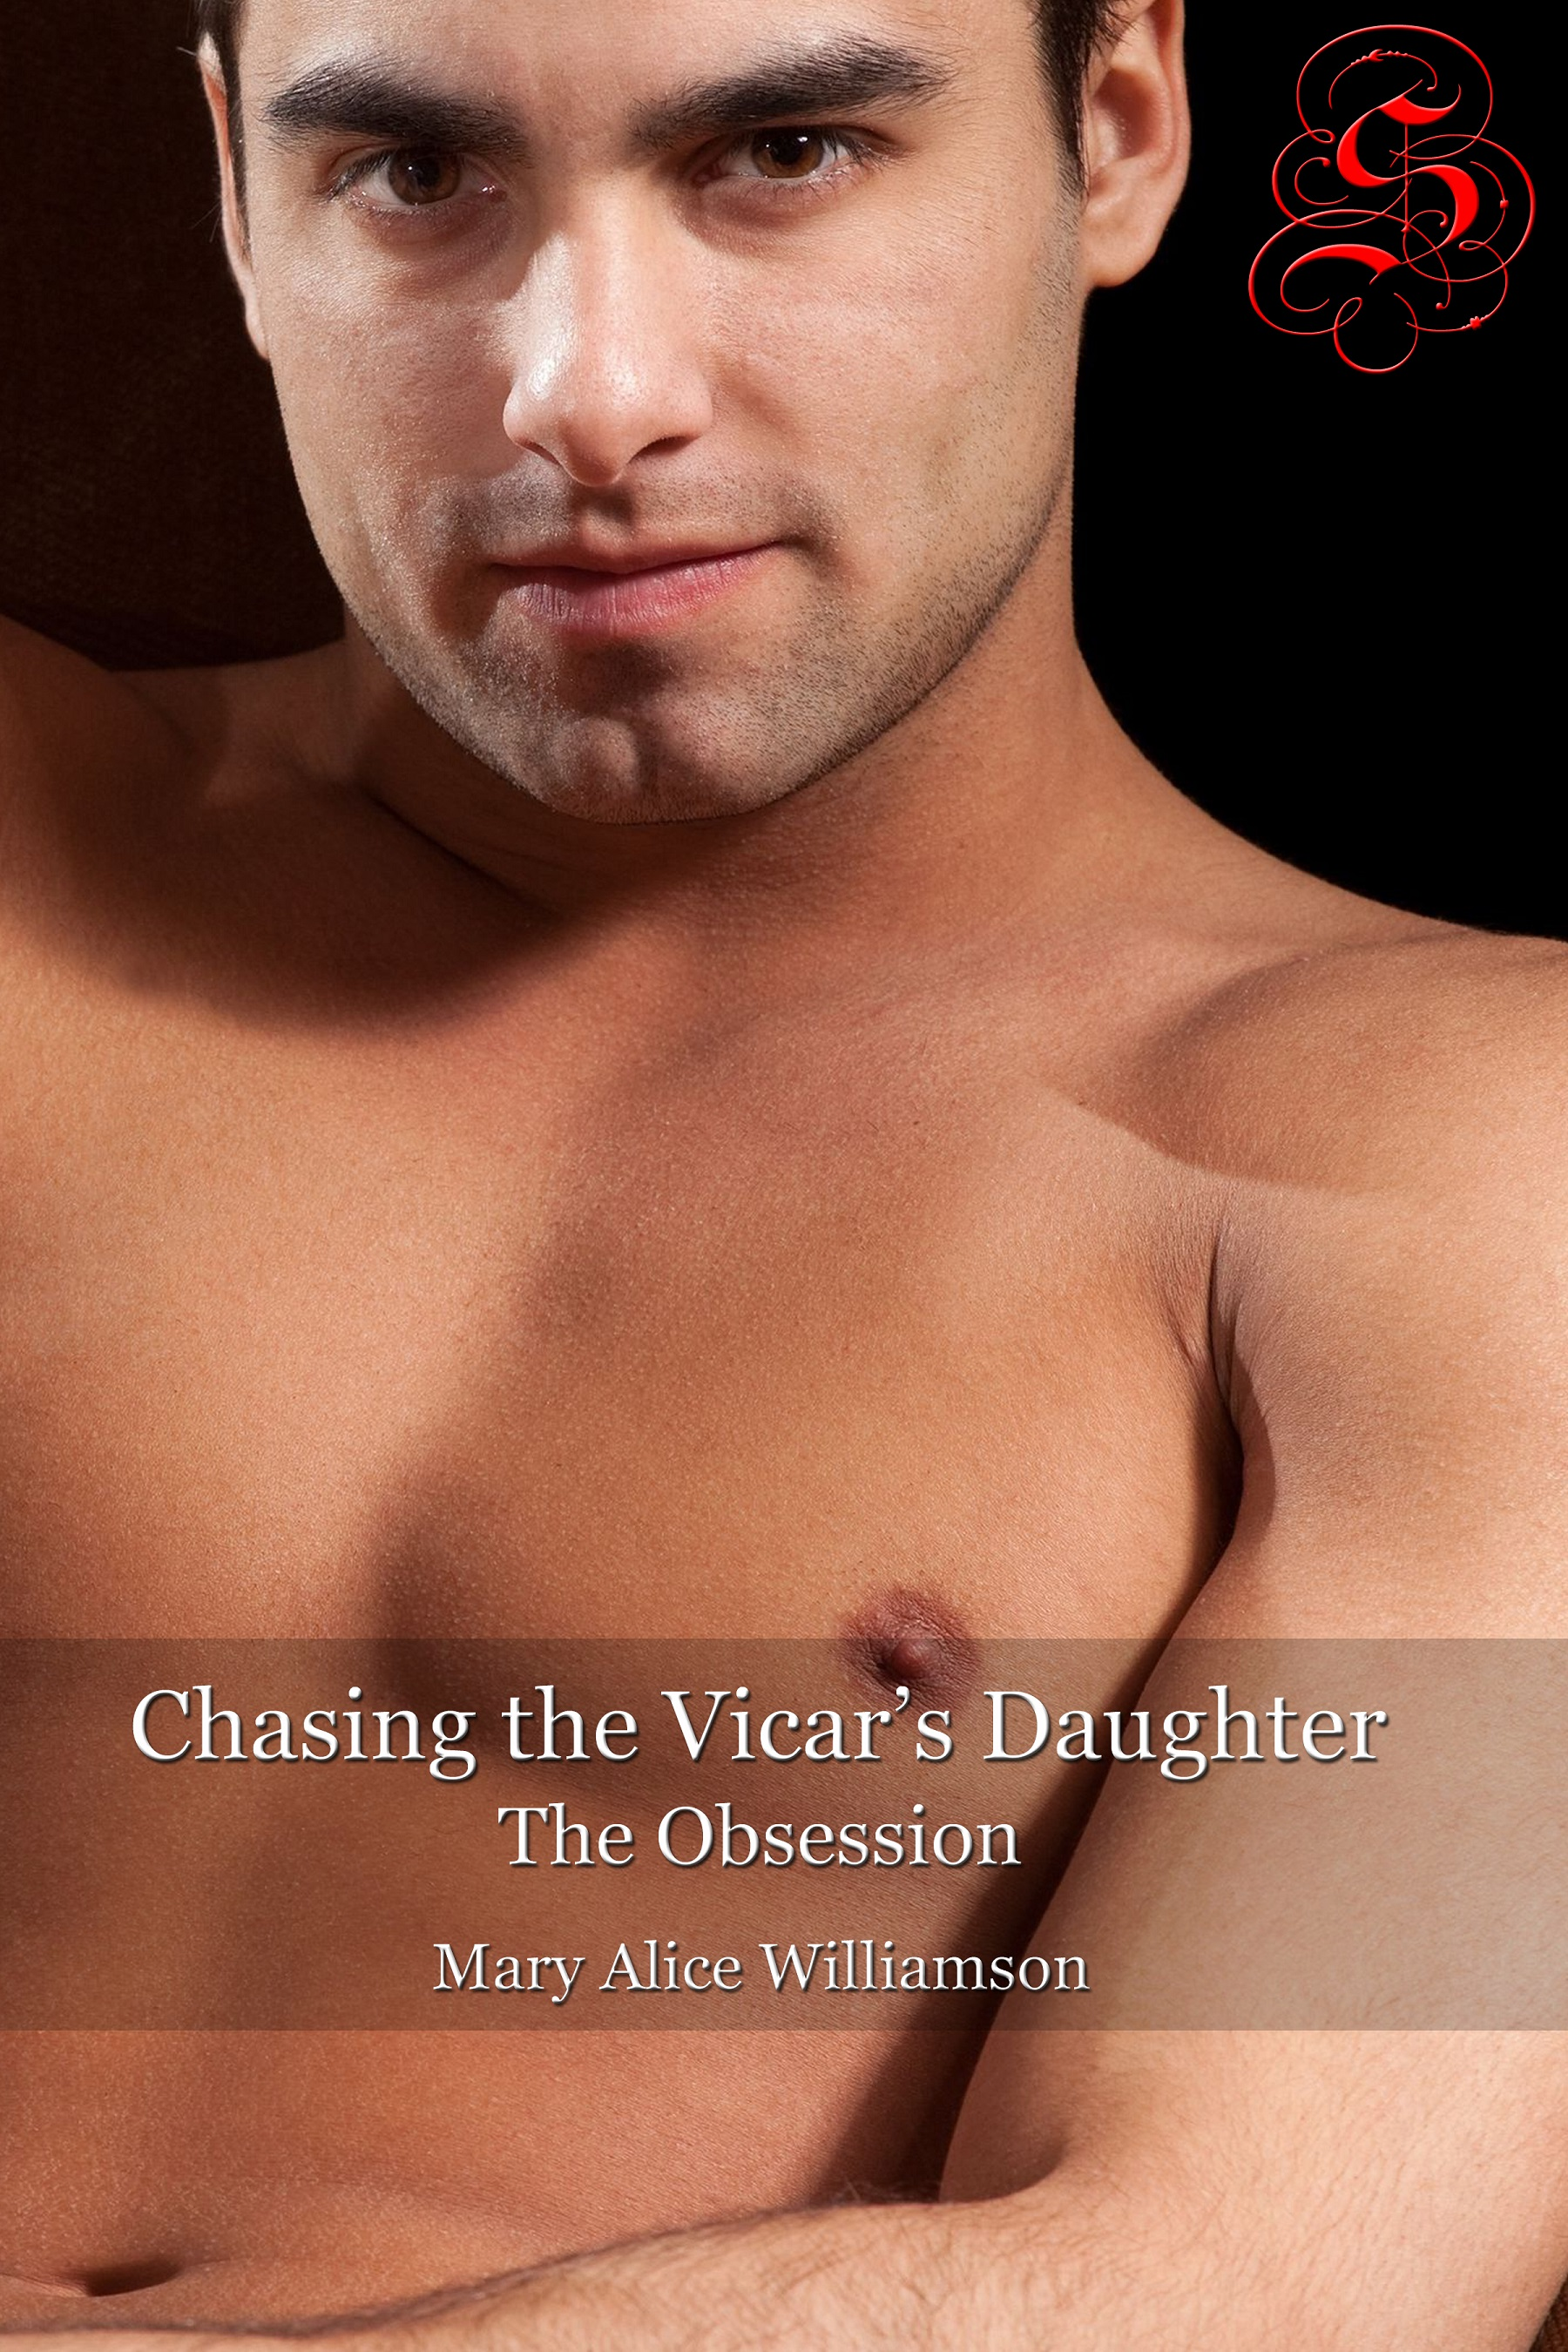 Mary Alice Williamson - Chasing the Vicar's Daughter—The Obsession